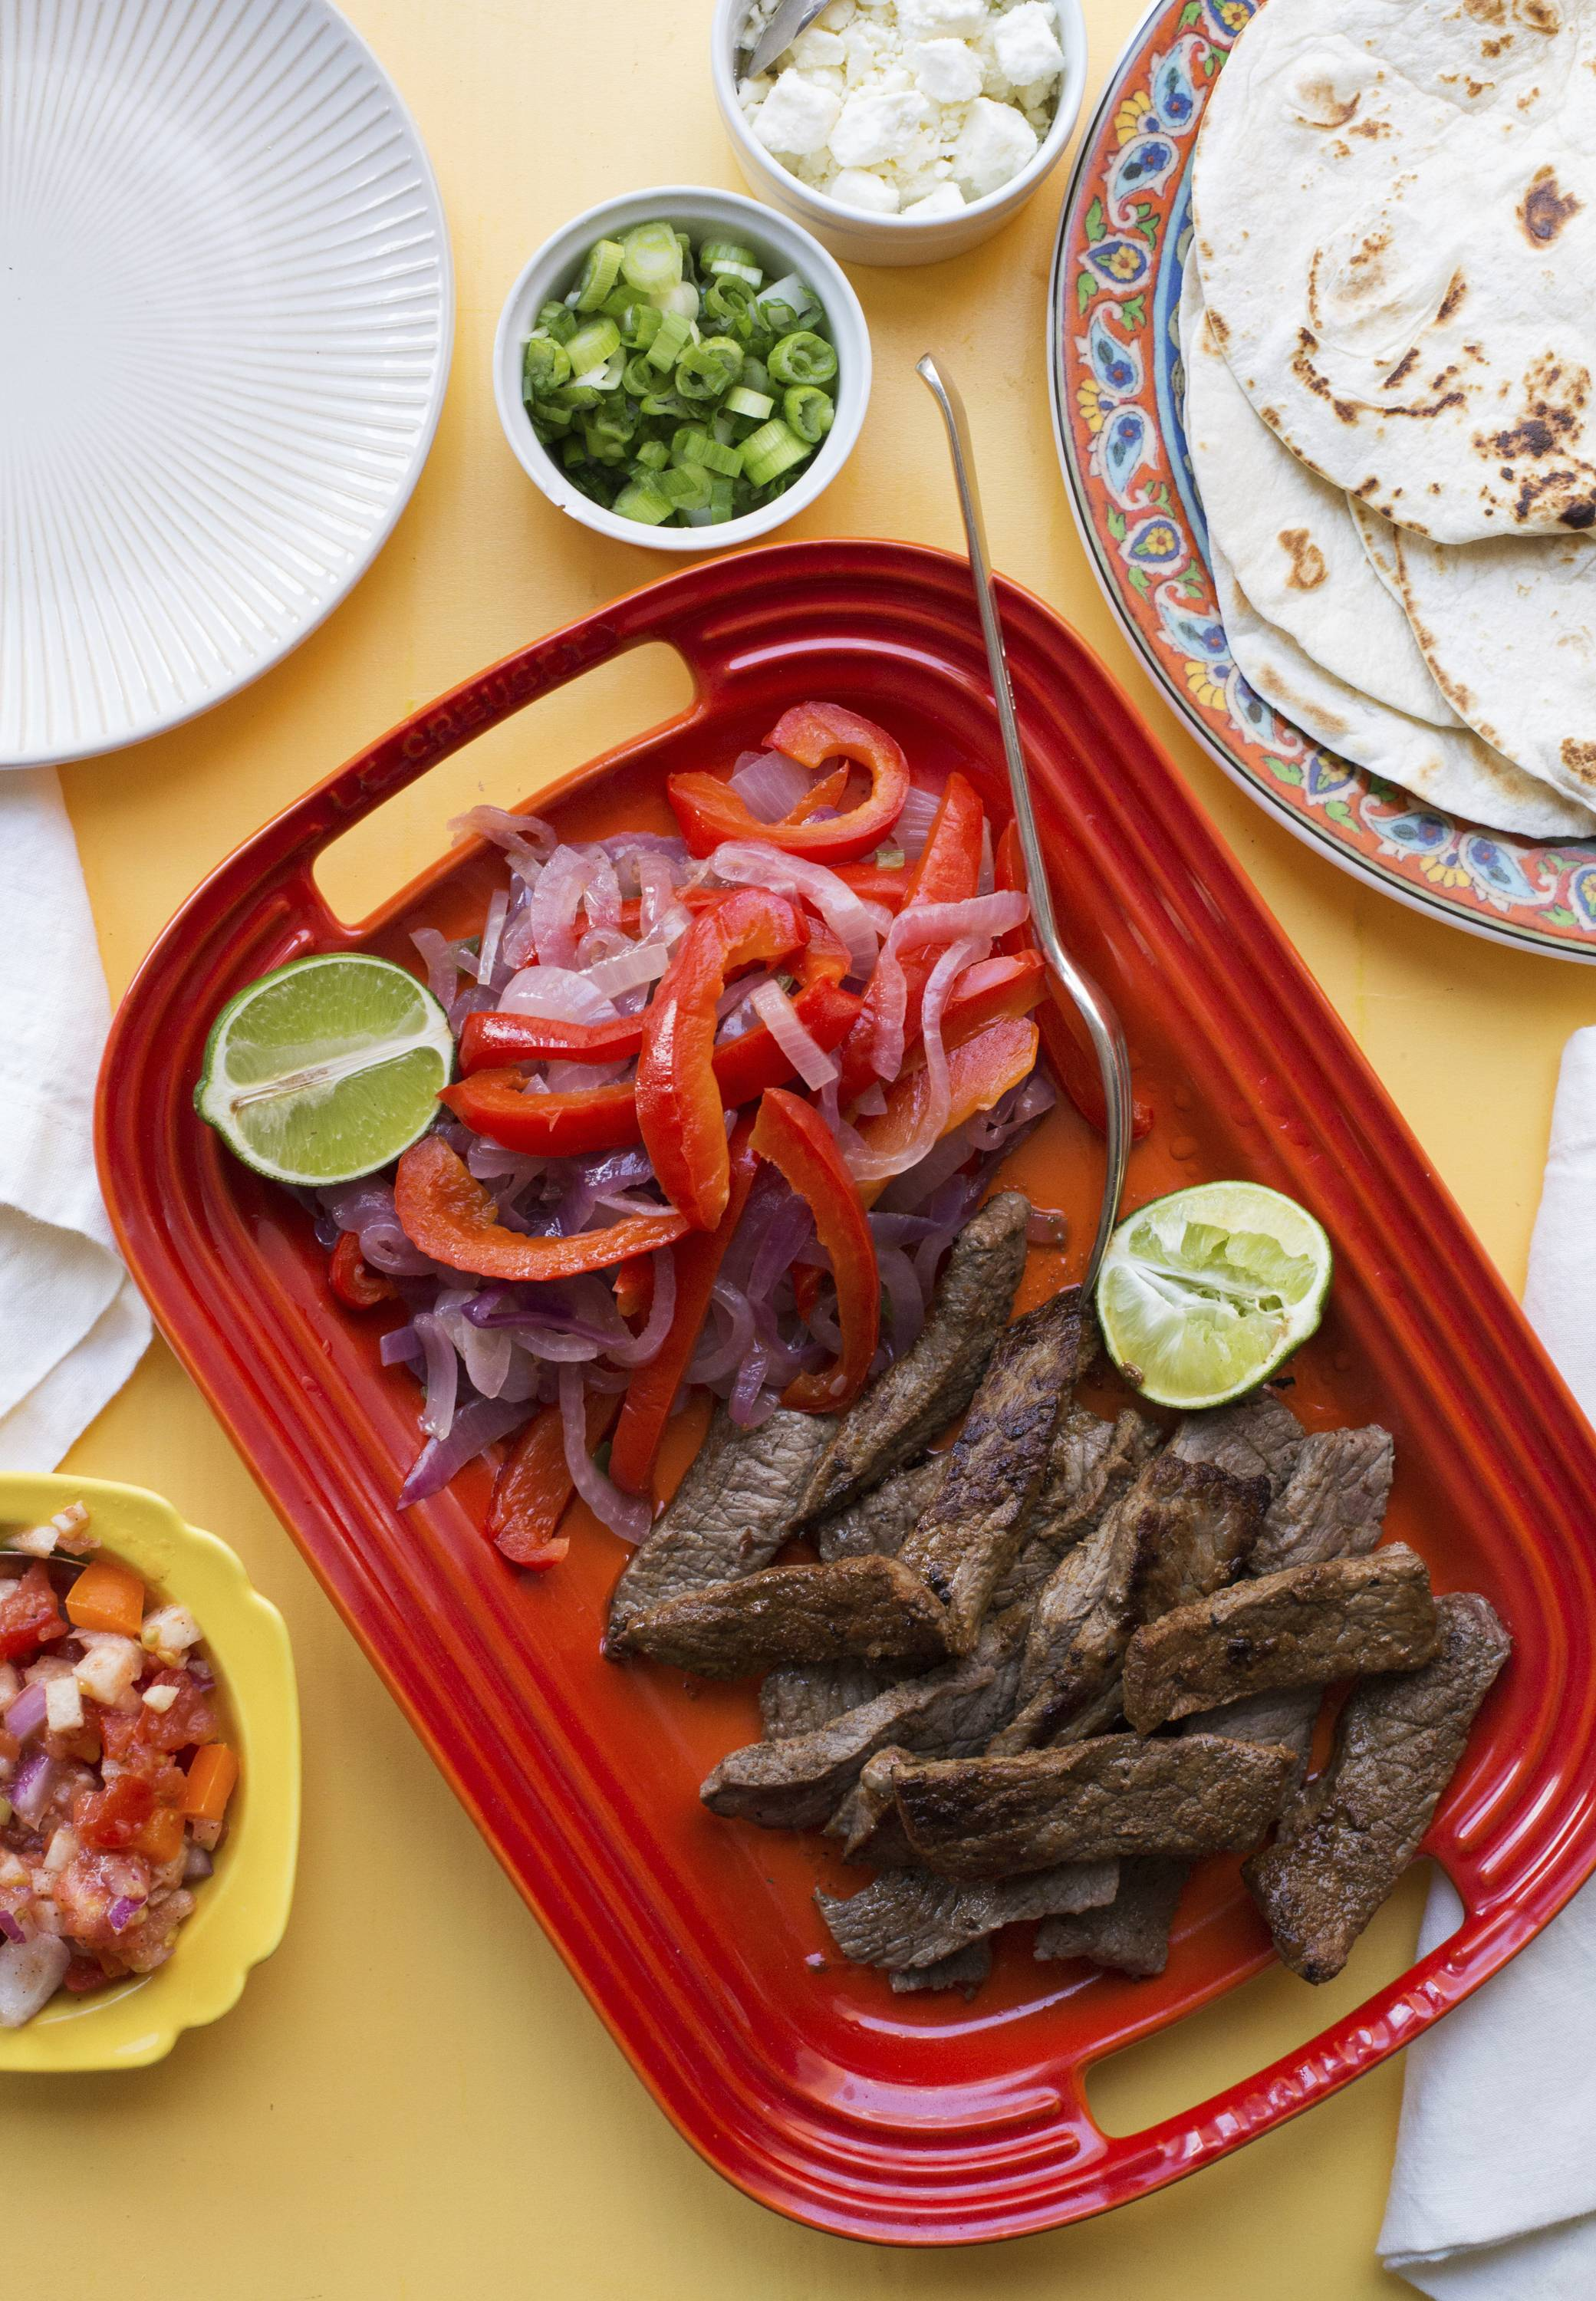 Wonderfully customizable, steak fajitas perfect for a game day spread. Let your guests put them together to taste.